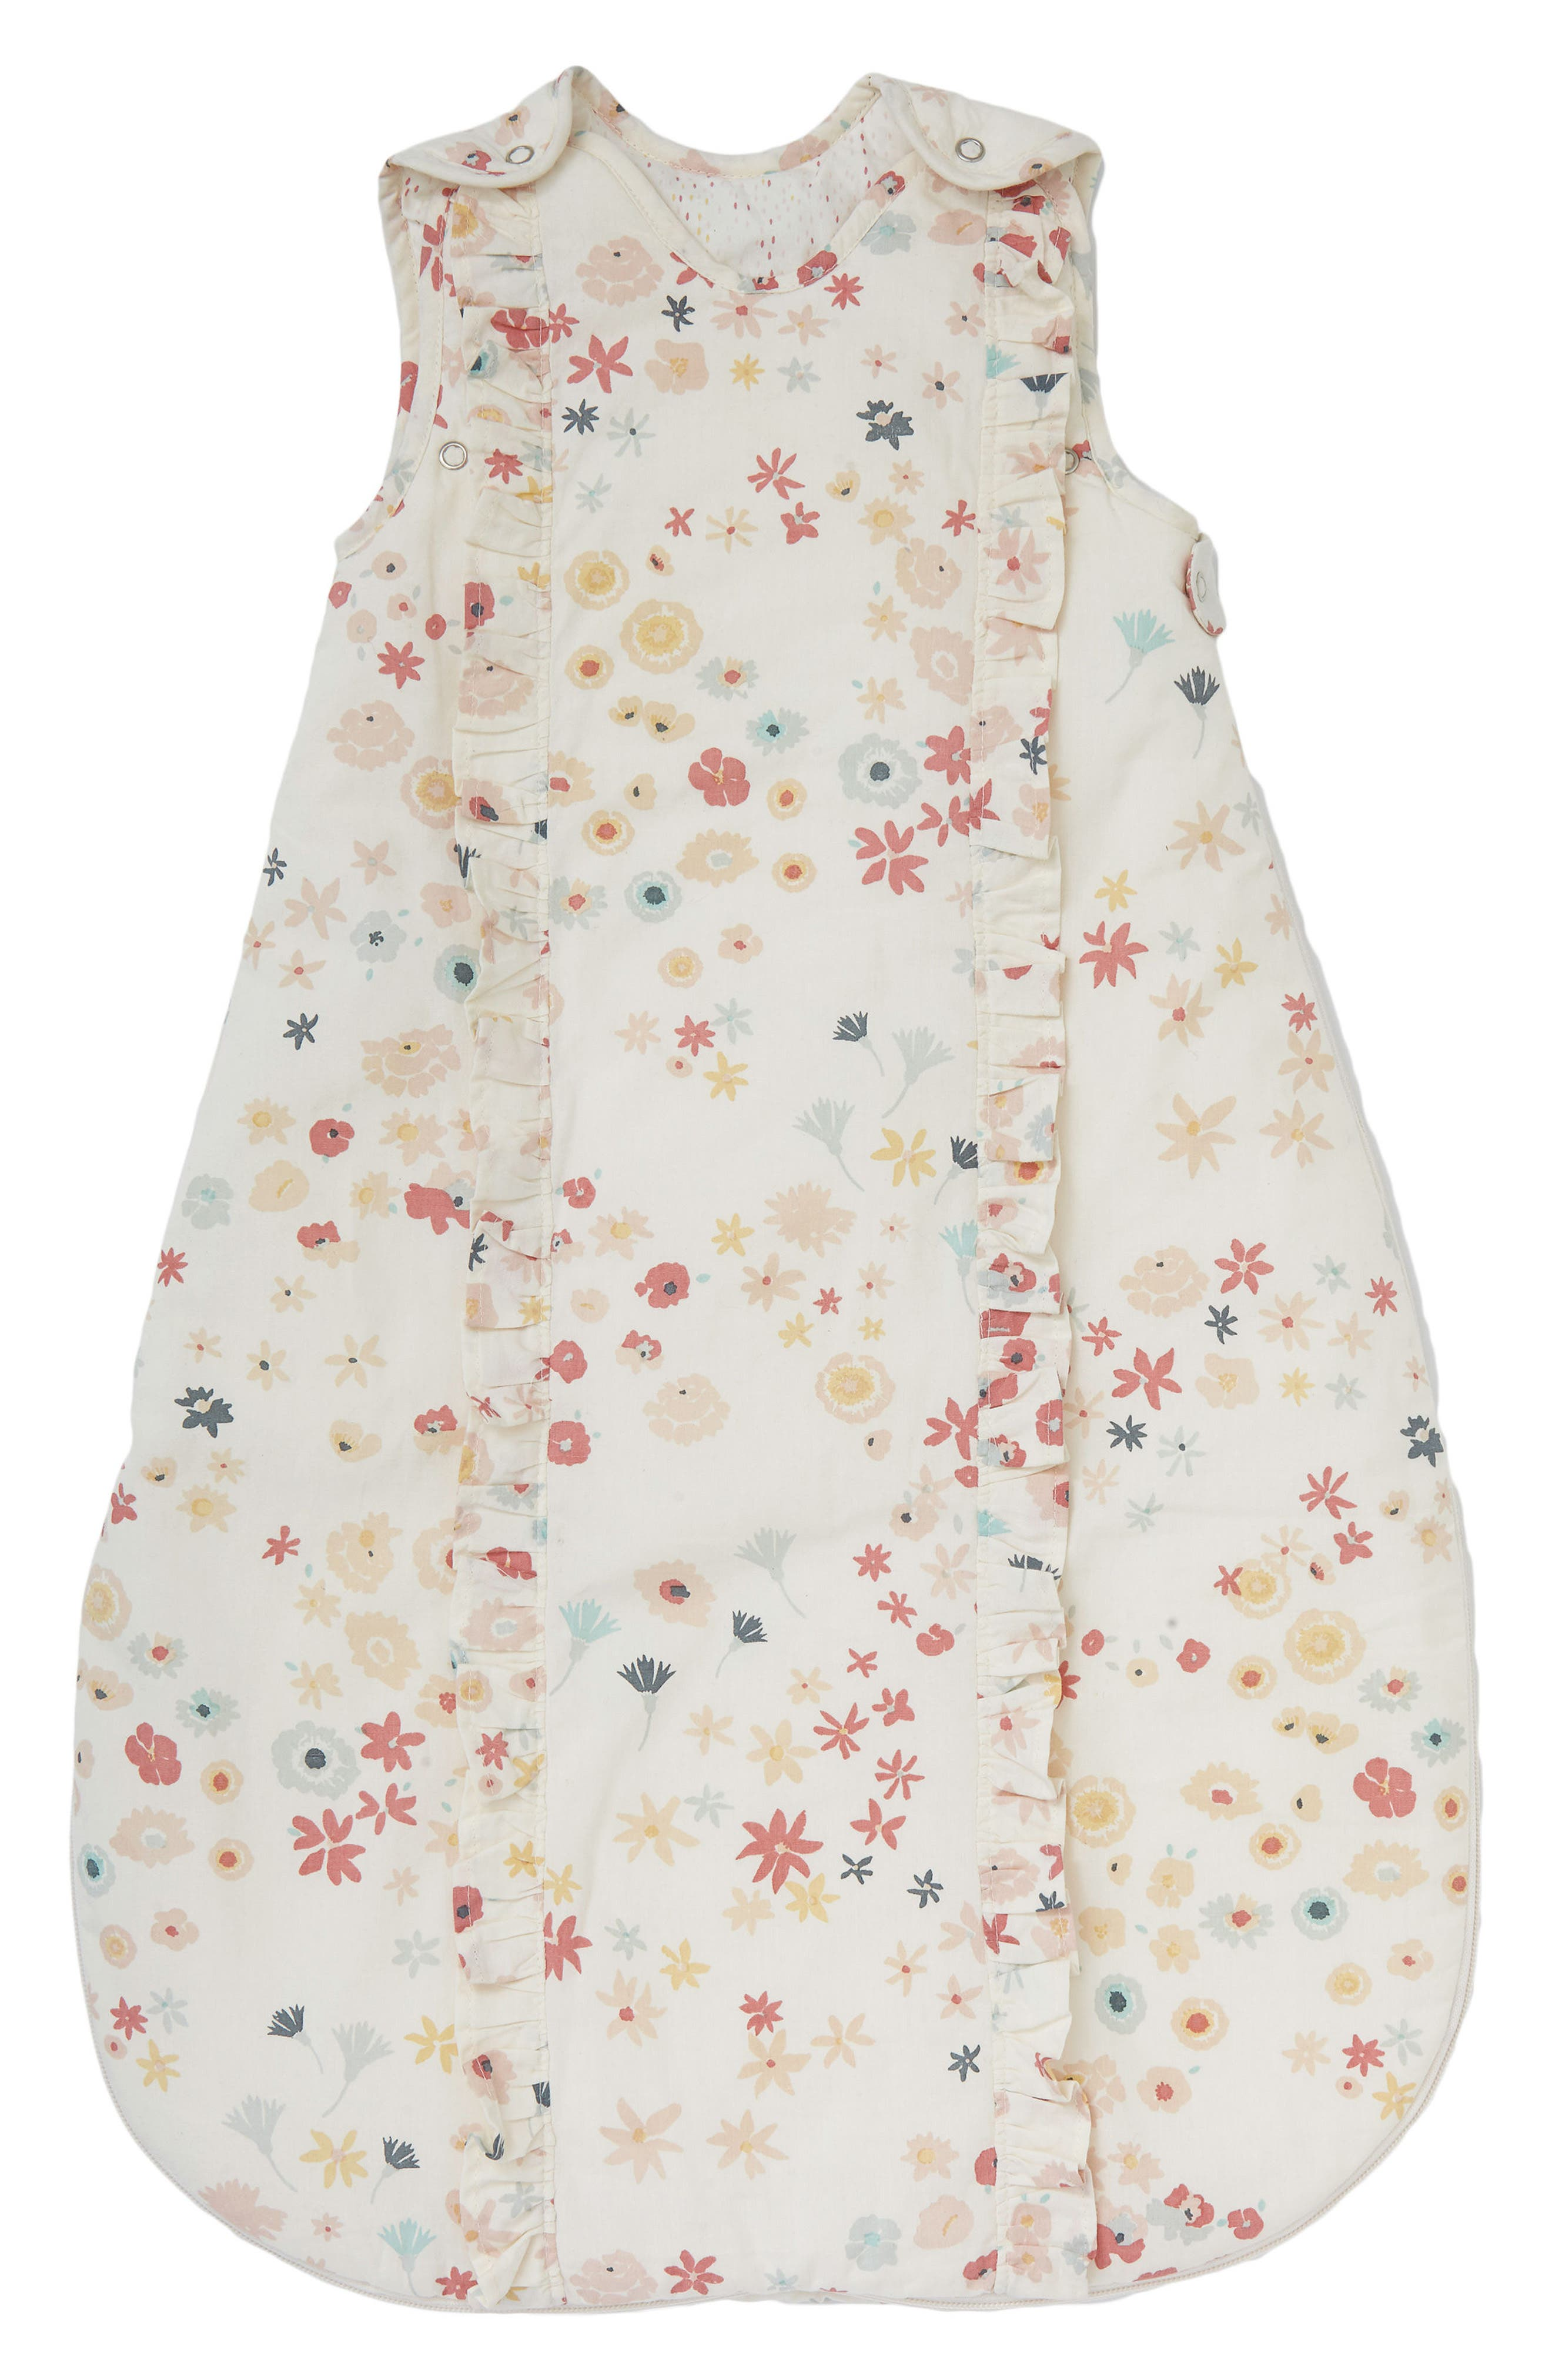 Meadow Print Cotton Wearable Blanket,                             Main thumbnail 1, color,                             PINK